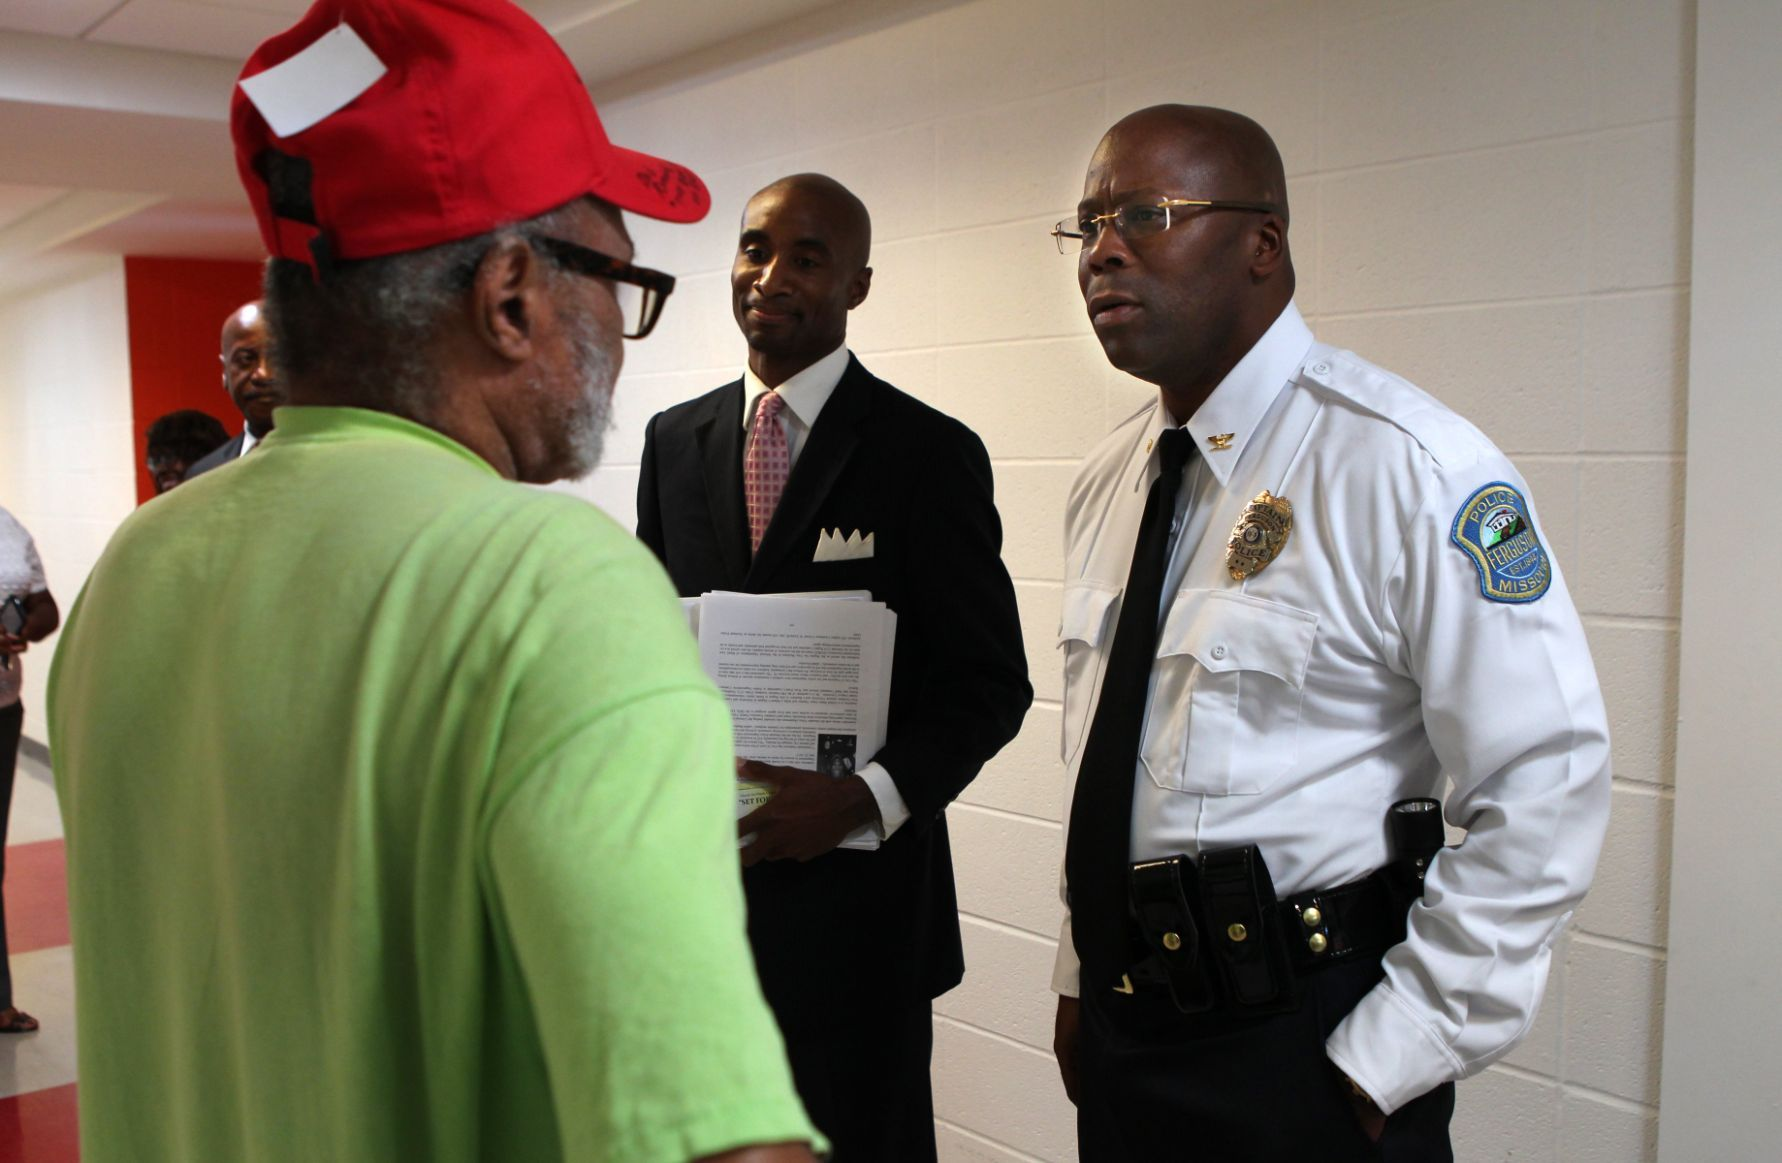 Ferguson names new interim police chief